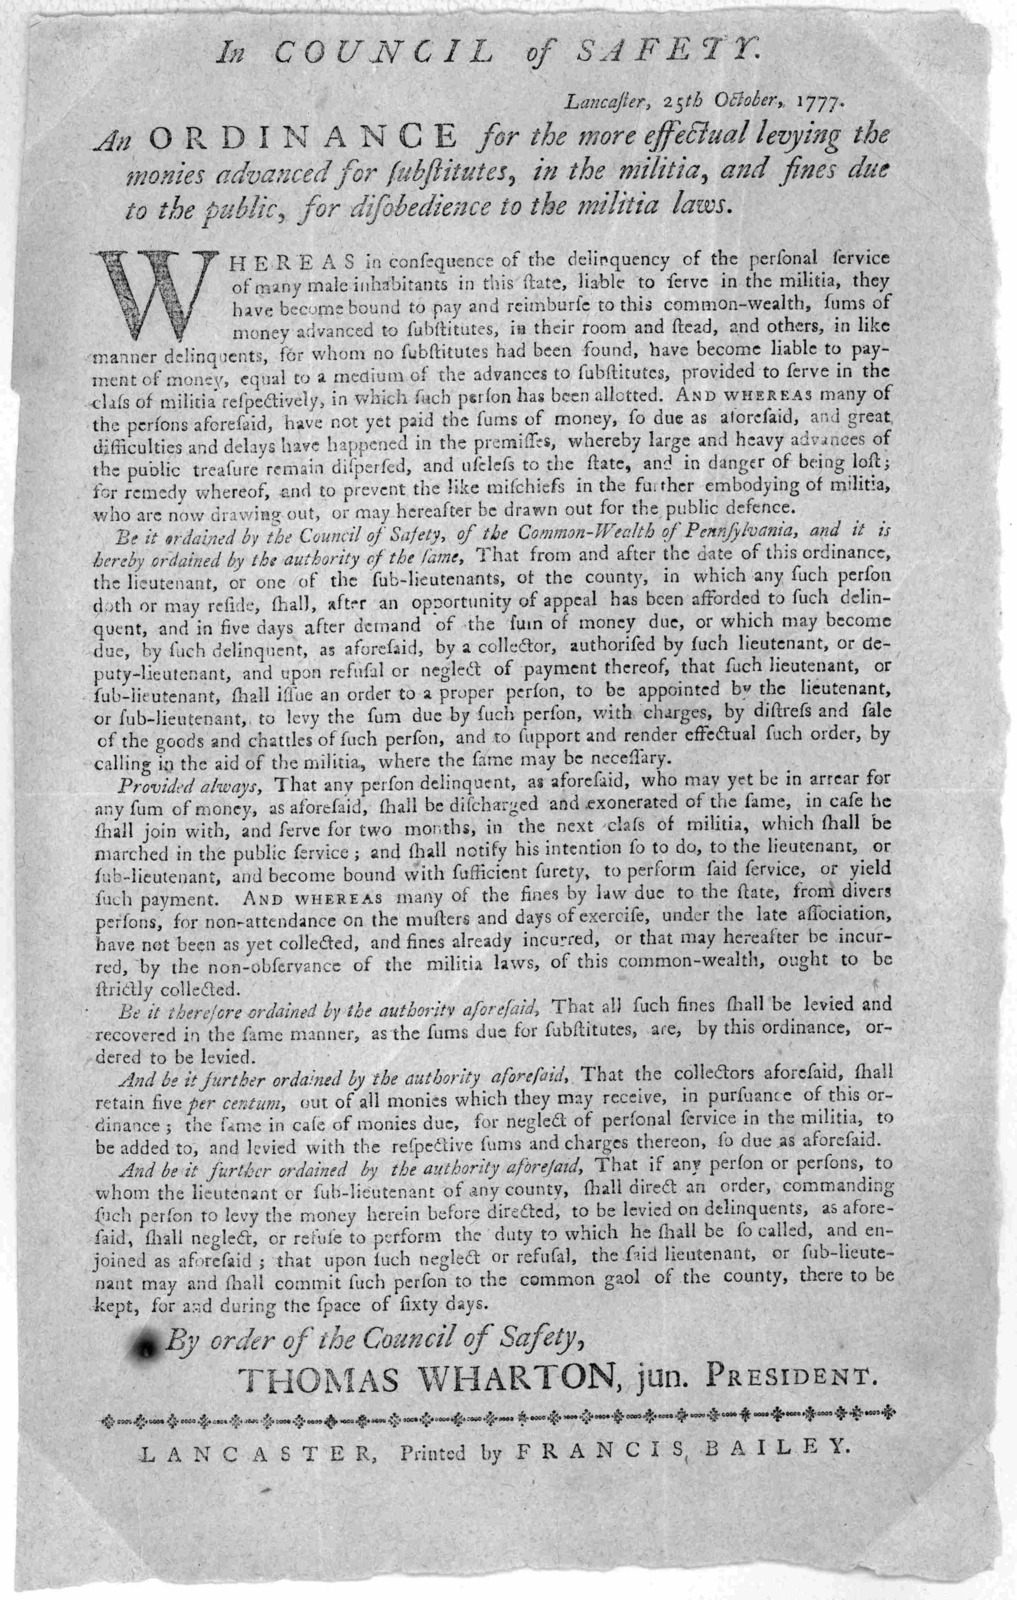 In Council of Safety. Lancaster, 25th October, 1777. An ordinance for the more effectual levying the monies advanced for substitutes, in the militia, and fines due to the public, for disobedience to the militia laws ... By order of the Council o